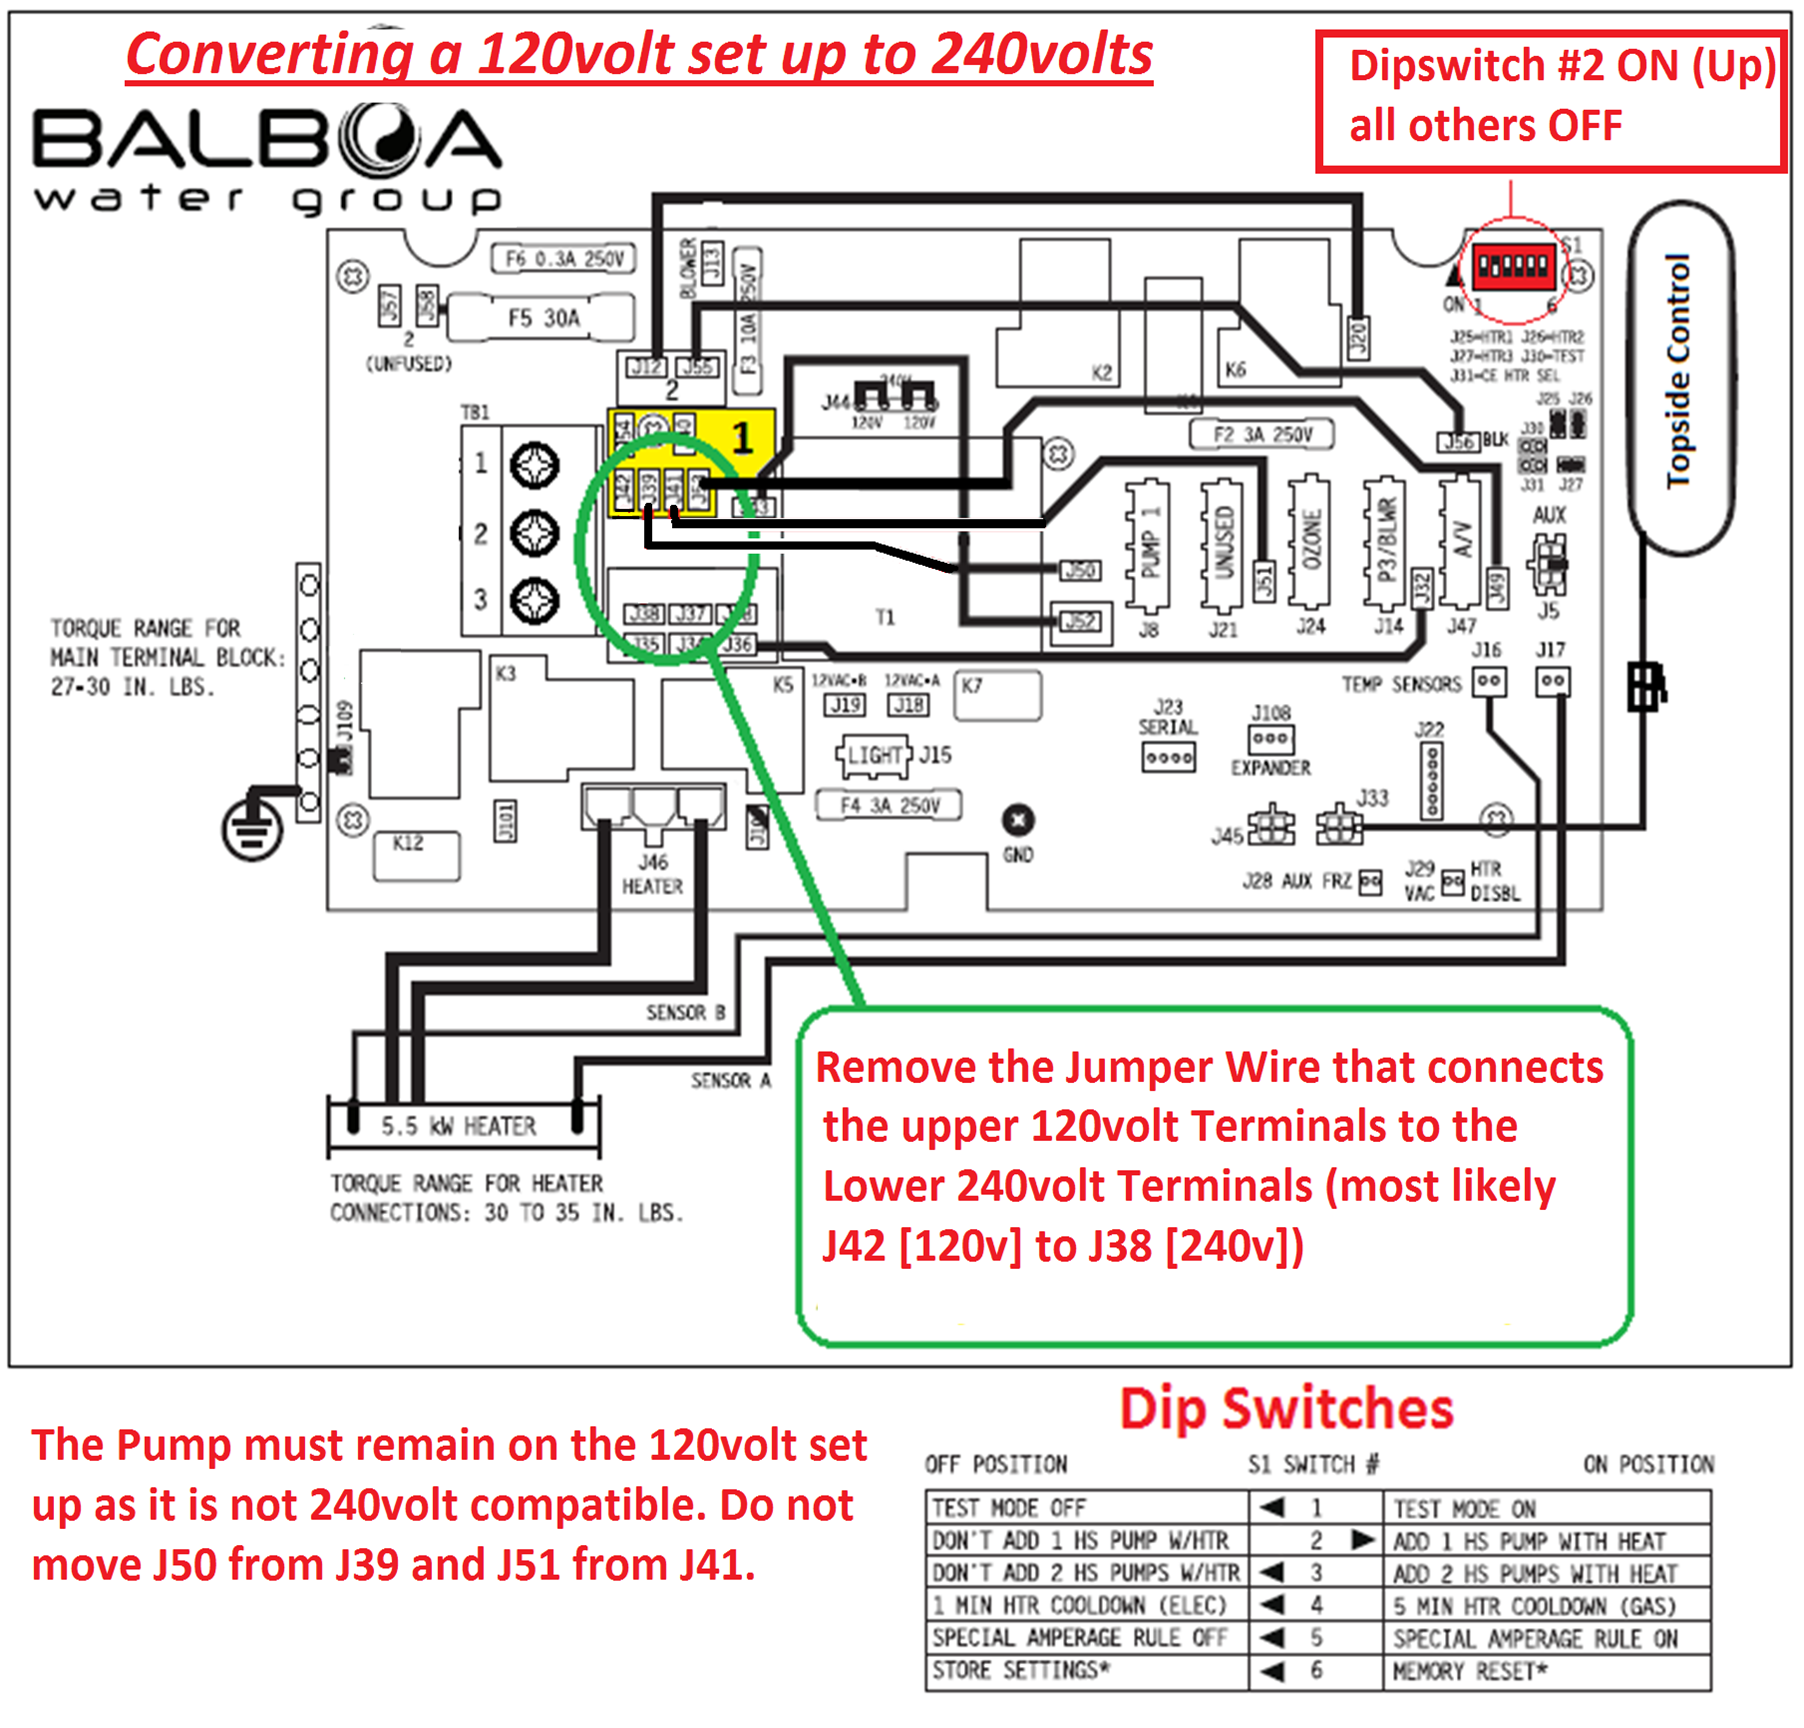 electrical installation converting a 120v balboa bp to 240v rh support canadianspacompany com 240v hot tub wiring diagram 240v hot tub wiring diagram